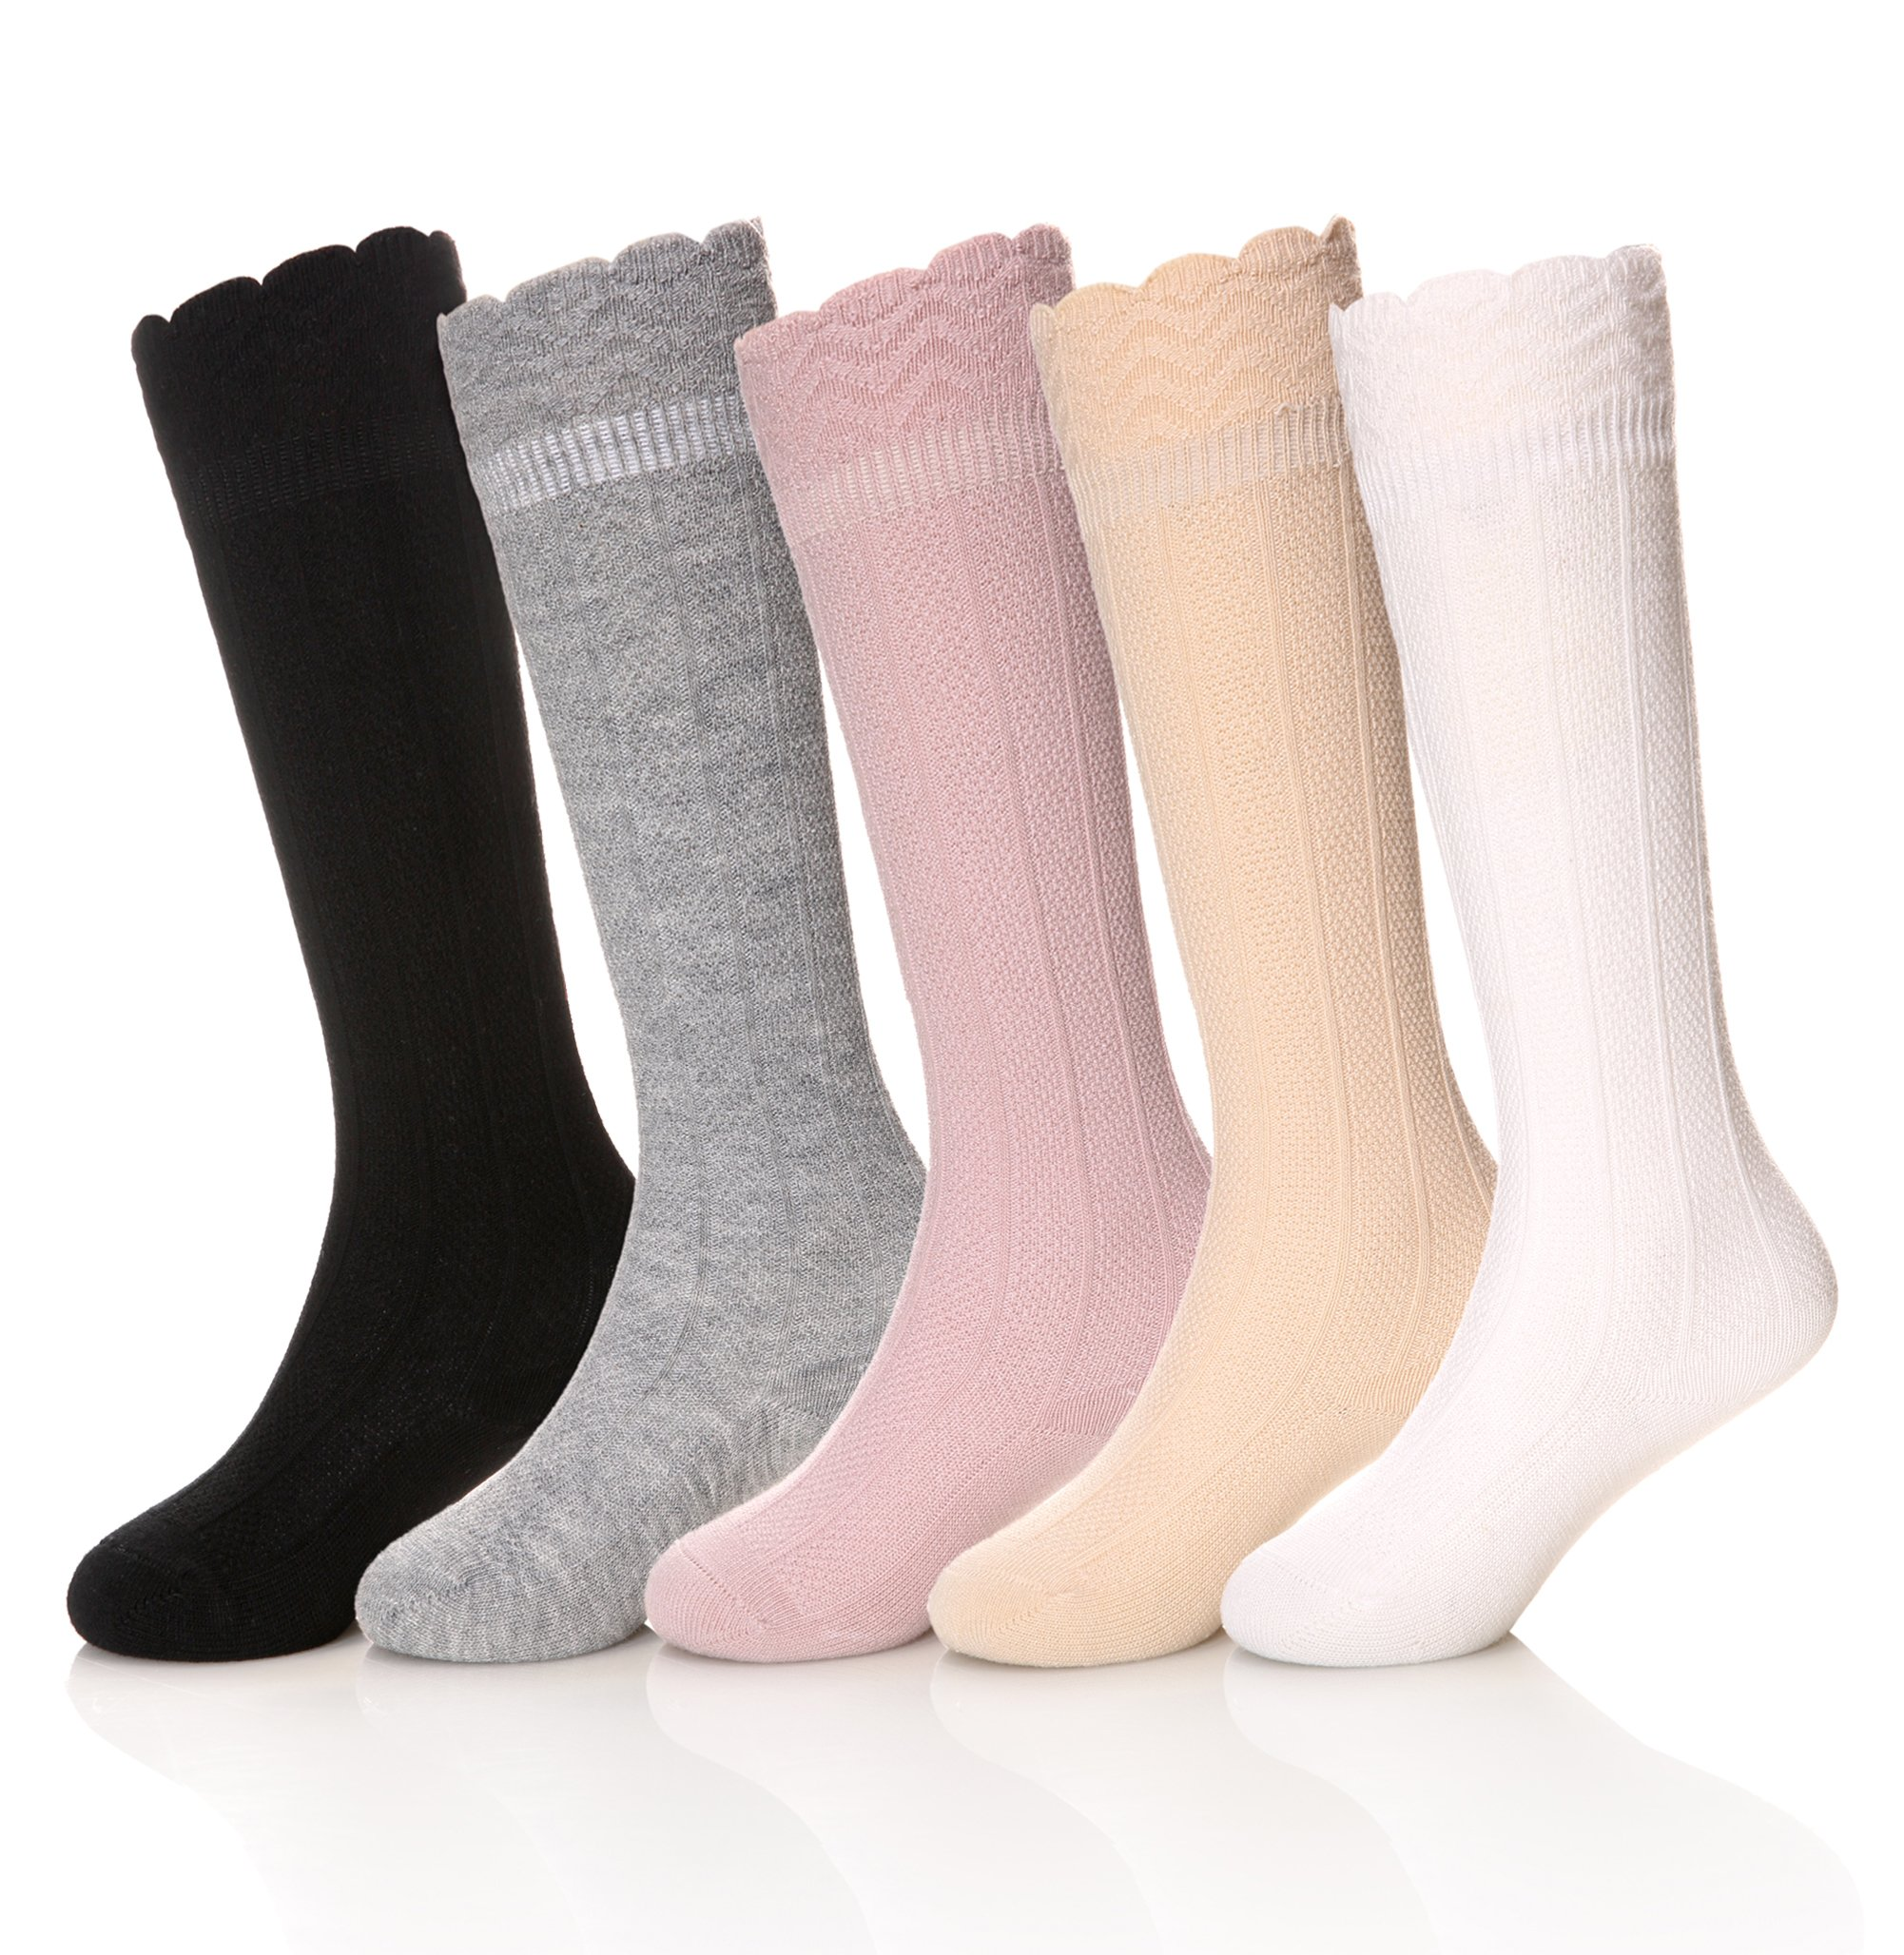 SEEYAN Baby Girls Boys Knee High Cotton Socks Kids Toddler Cable Knit Breathable Stockings (5 Pairs Color, 1-3 Years)